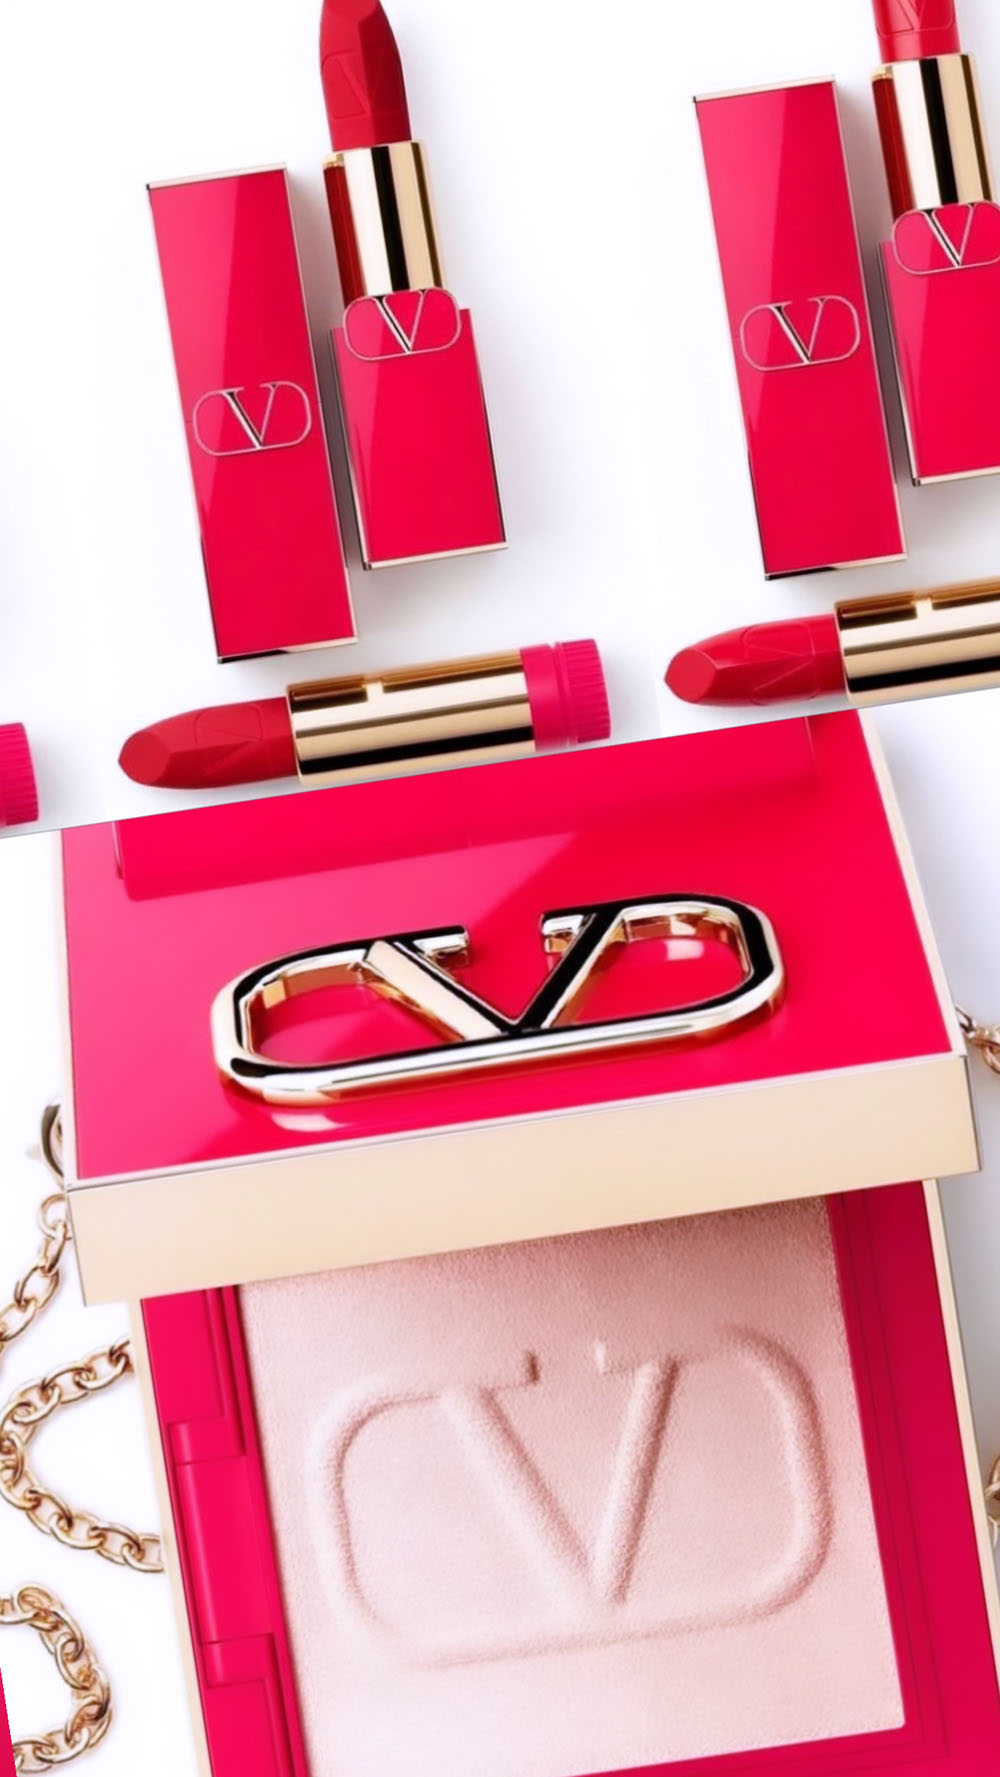 Valentino Makeup is Coming in Summer 2021 I DreaminLace.com #Makeup #valentino